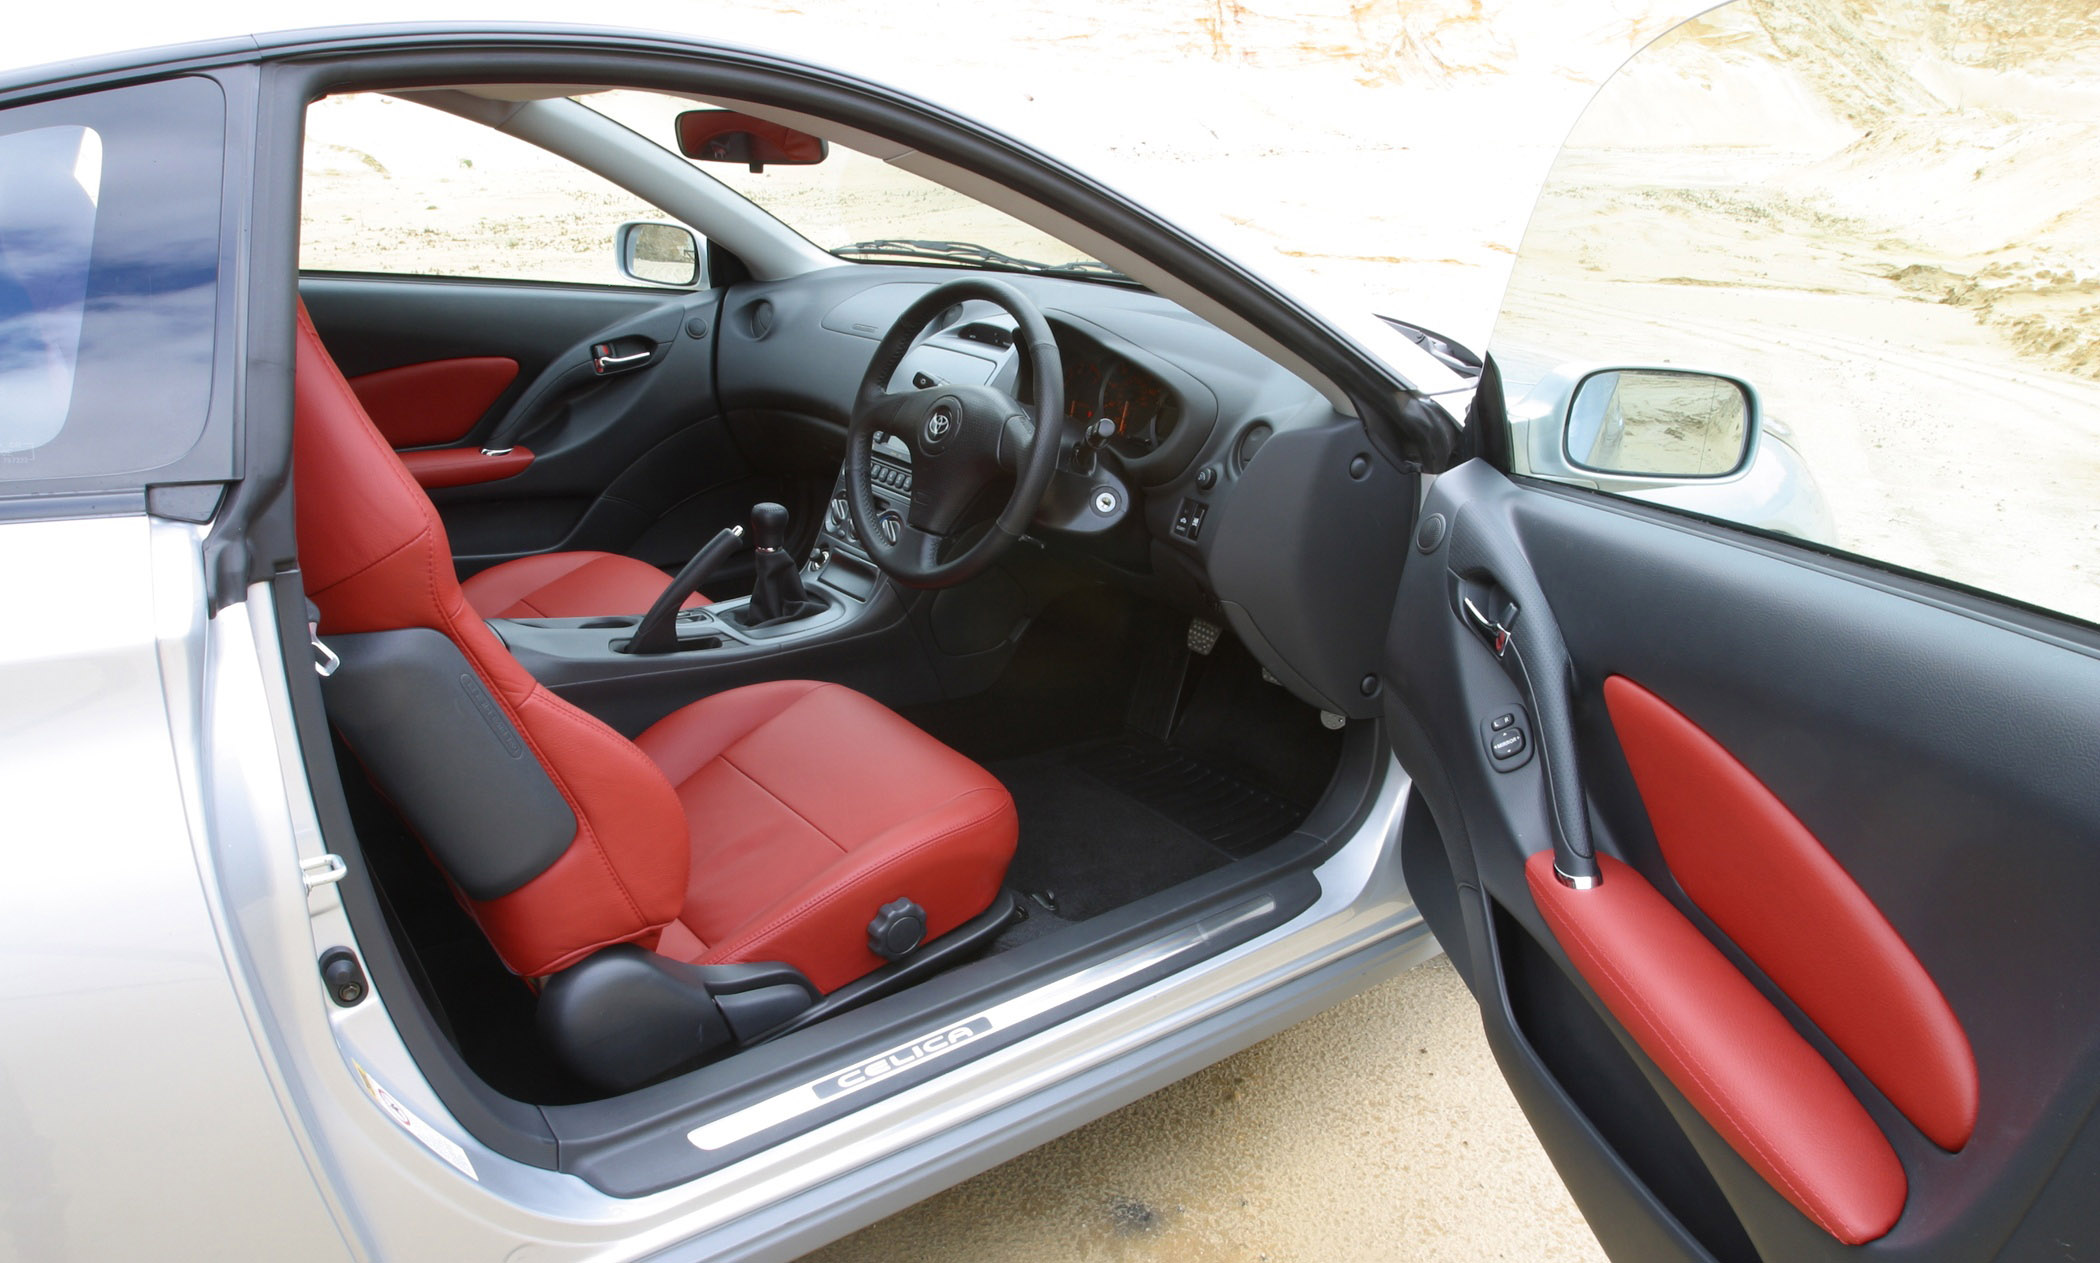 2004 Toyota Celica Red Collection Picture 77110